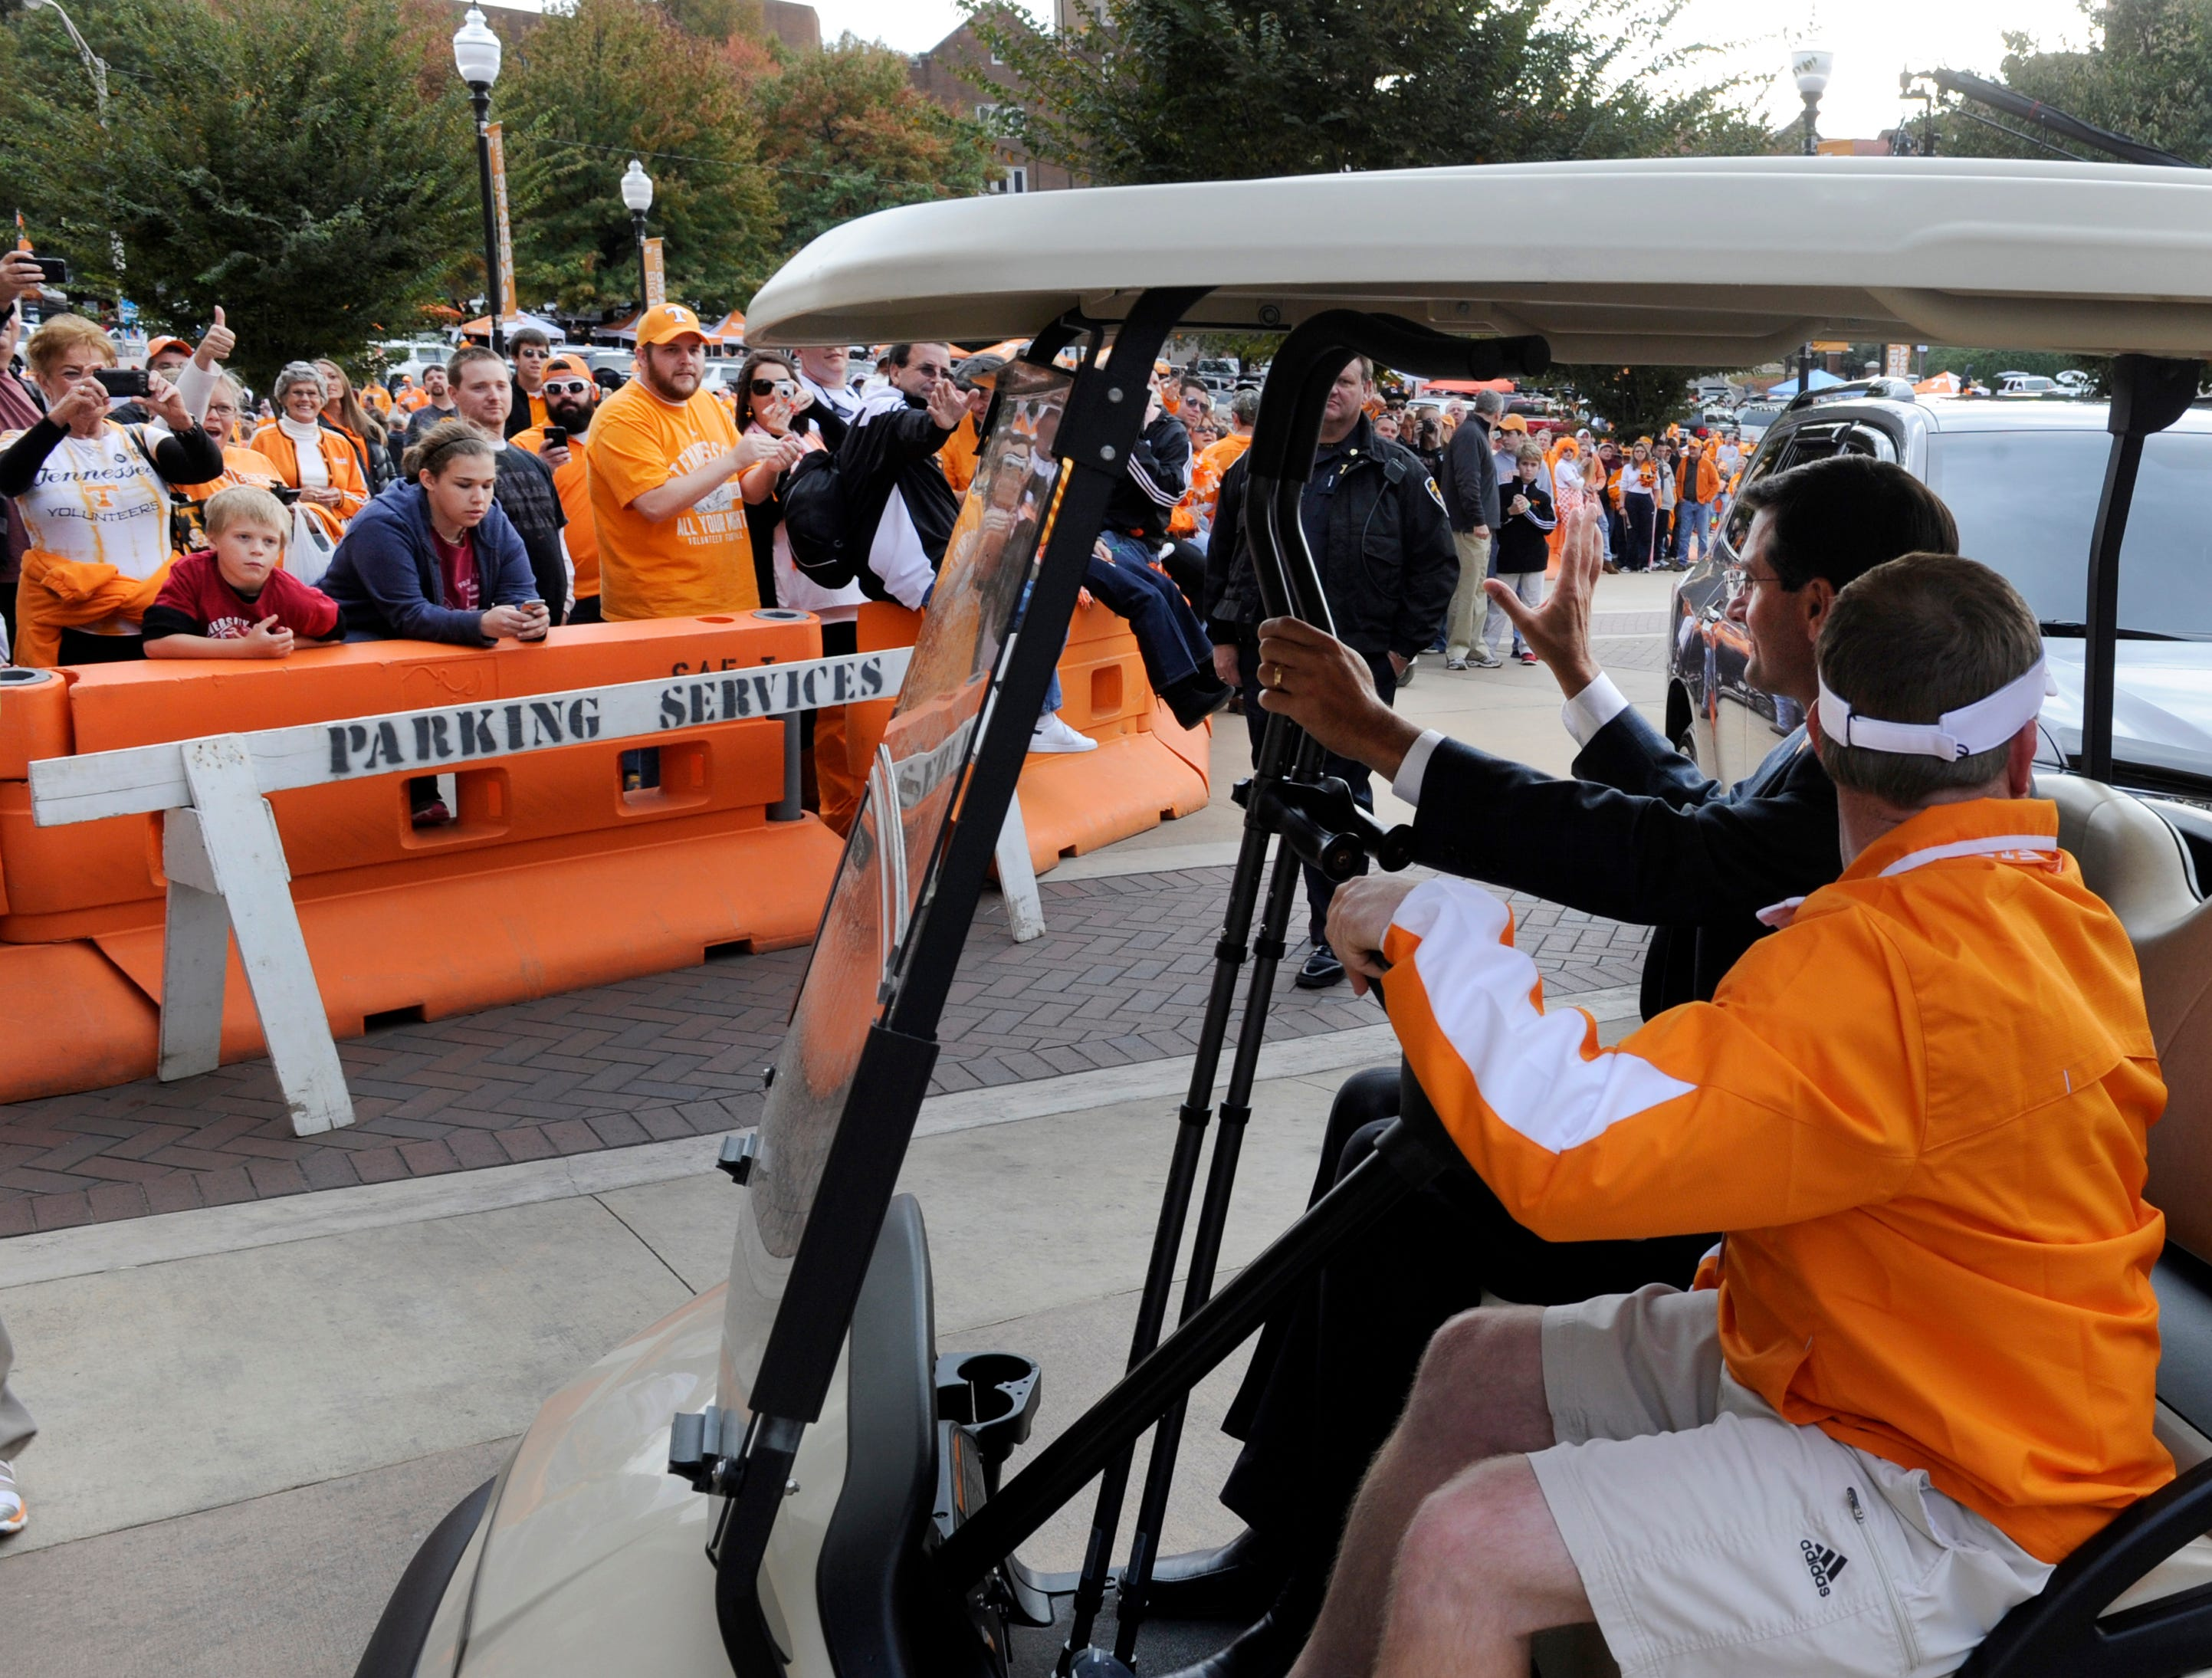 Tennessee head coach Derek Dooley waves to fans as he is driven into Neyland Stadium on a cart Saturday, Oct. 20, 2012 in Knoxville.